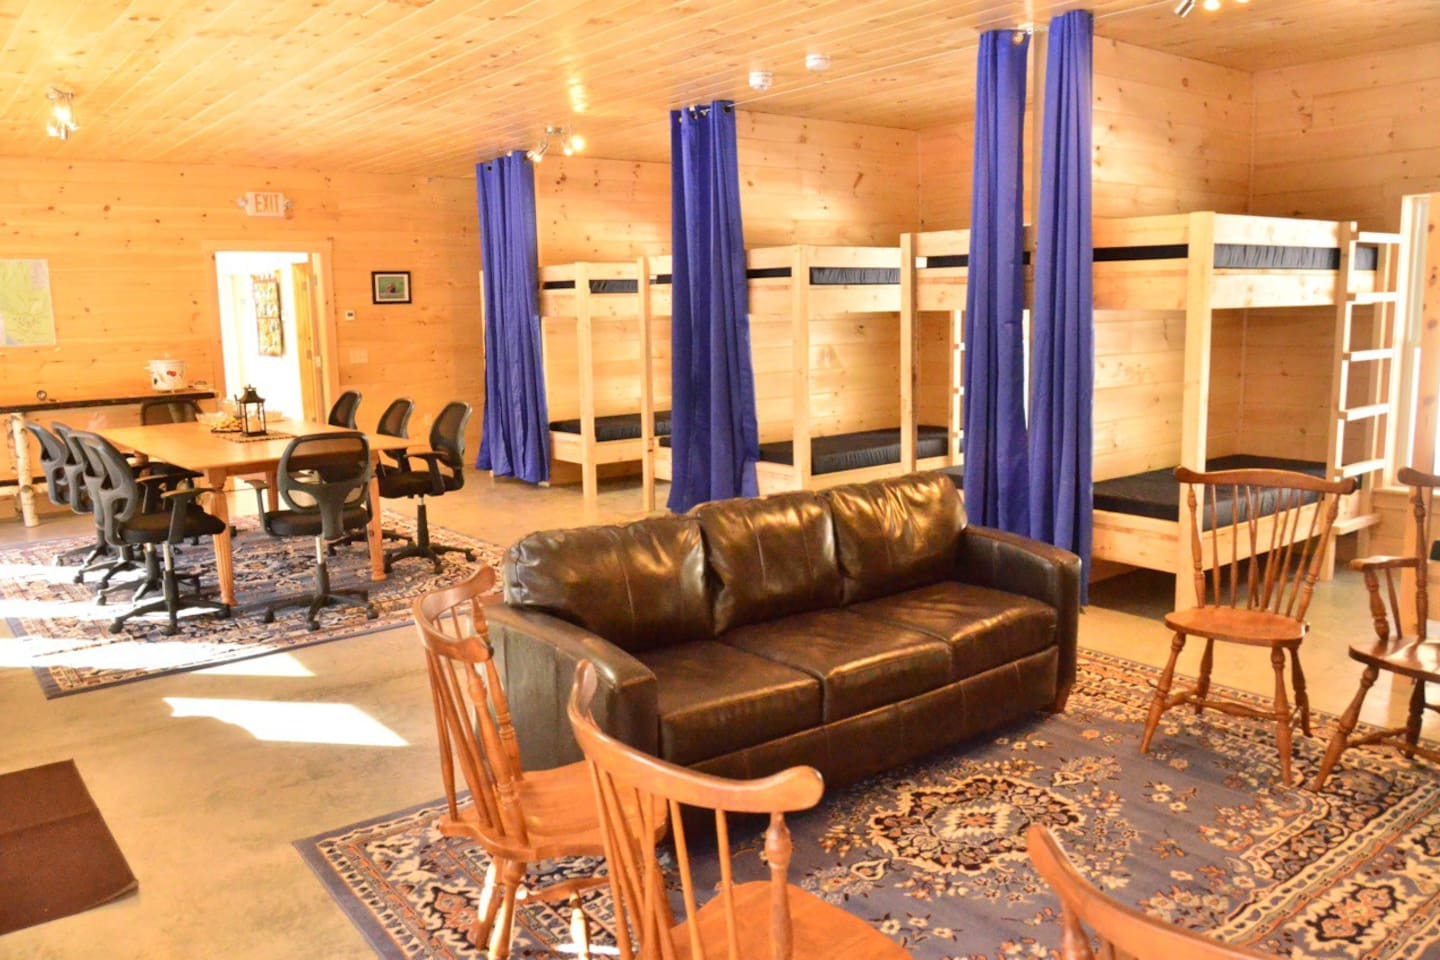 Our 16 bunks are separated by curtains into groups of 4 for more privacy.